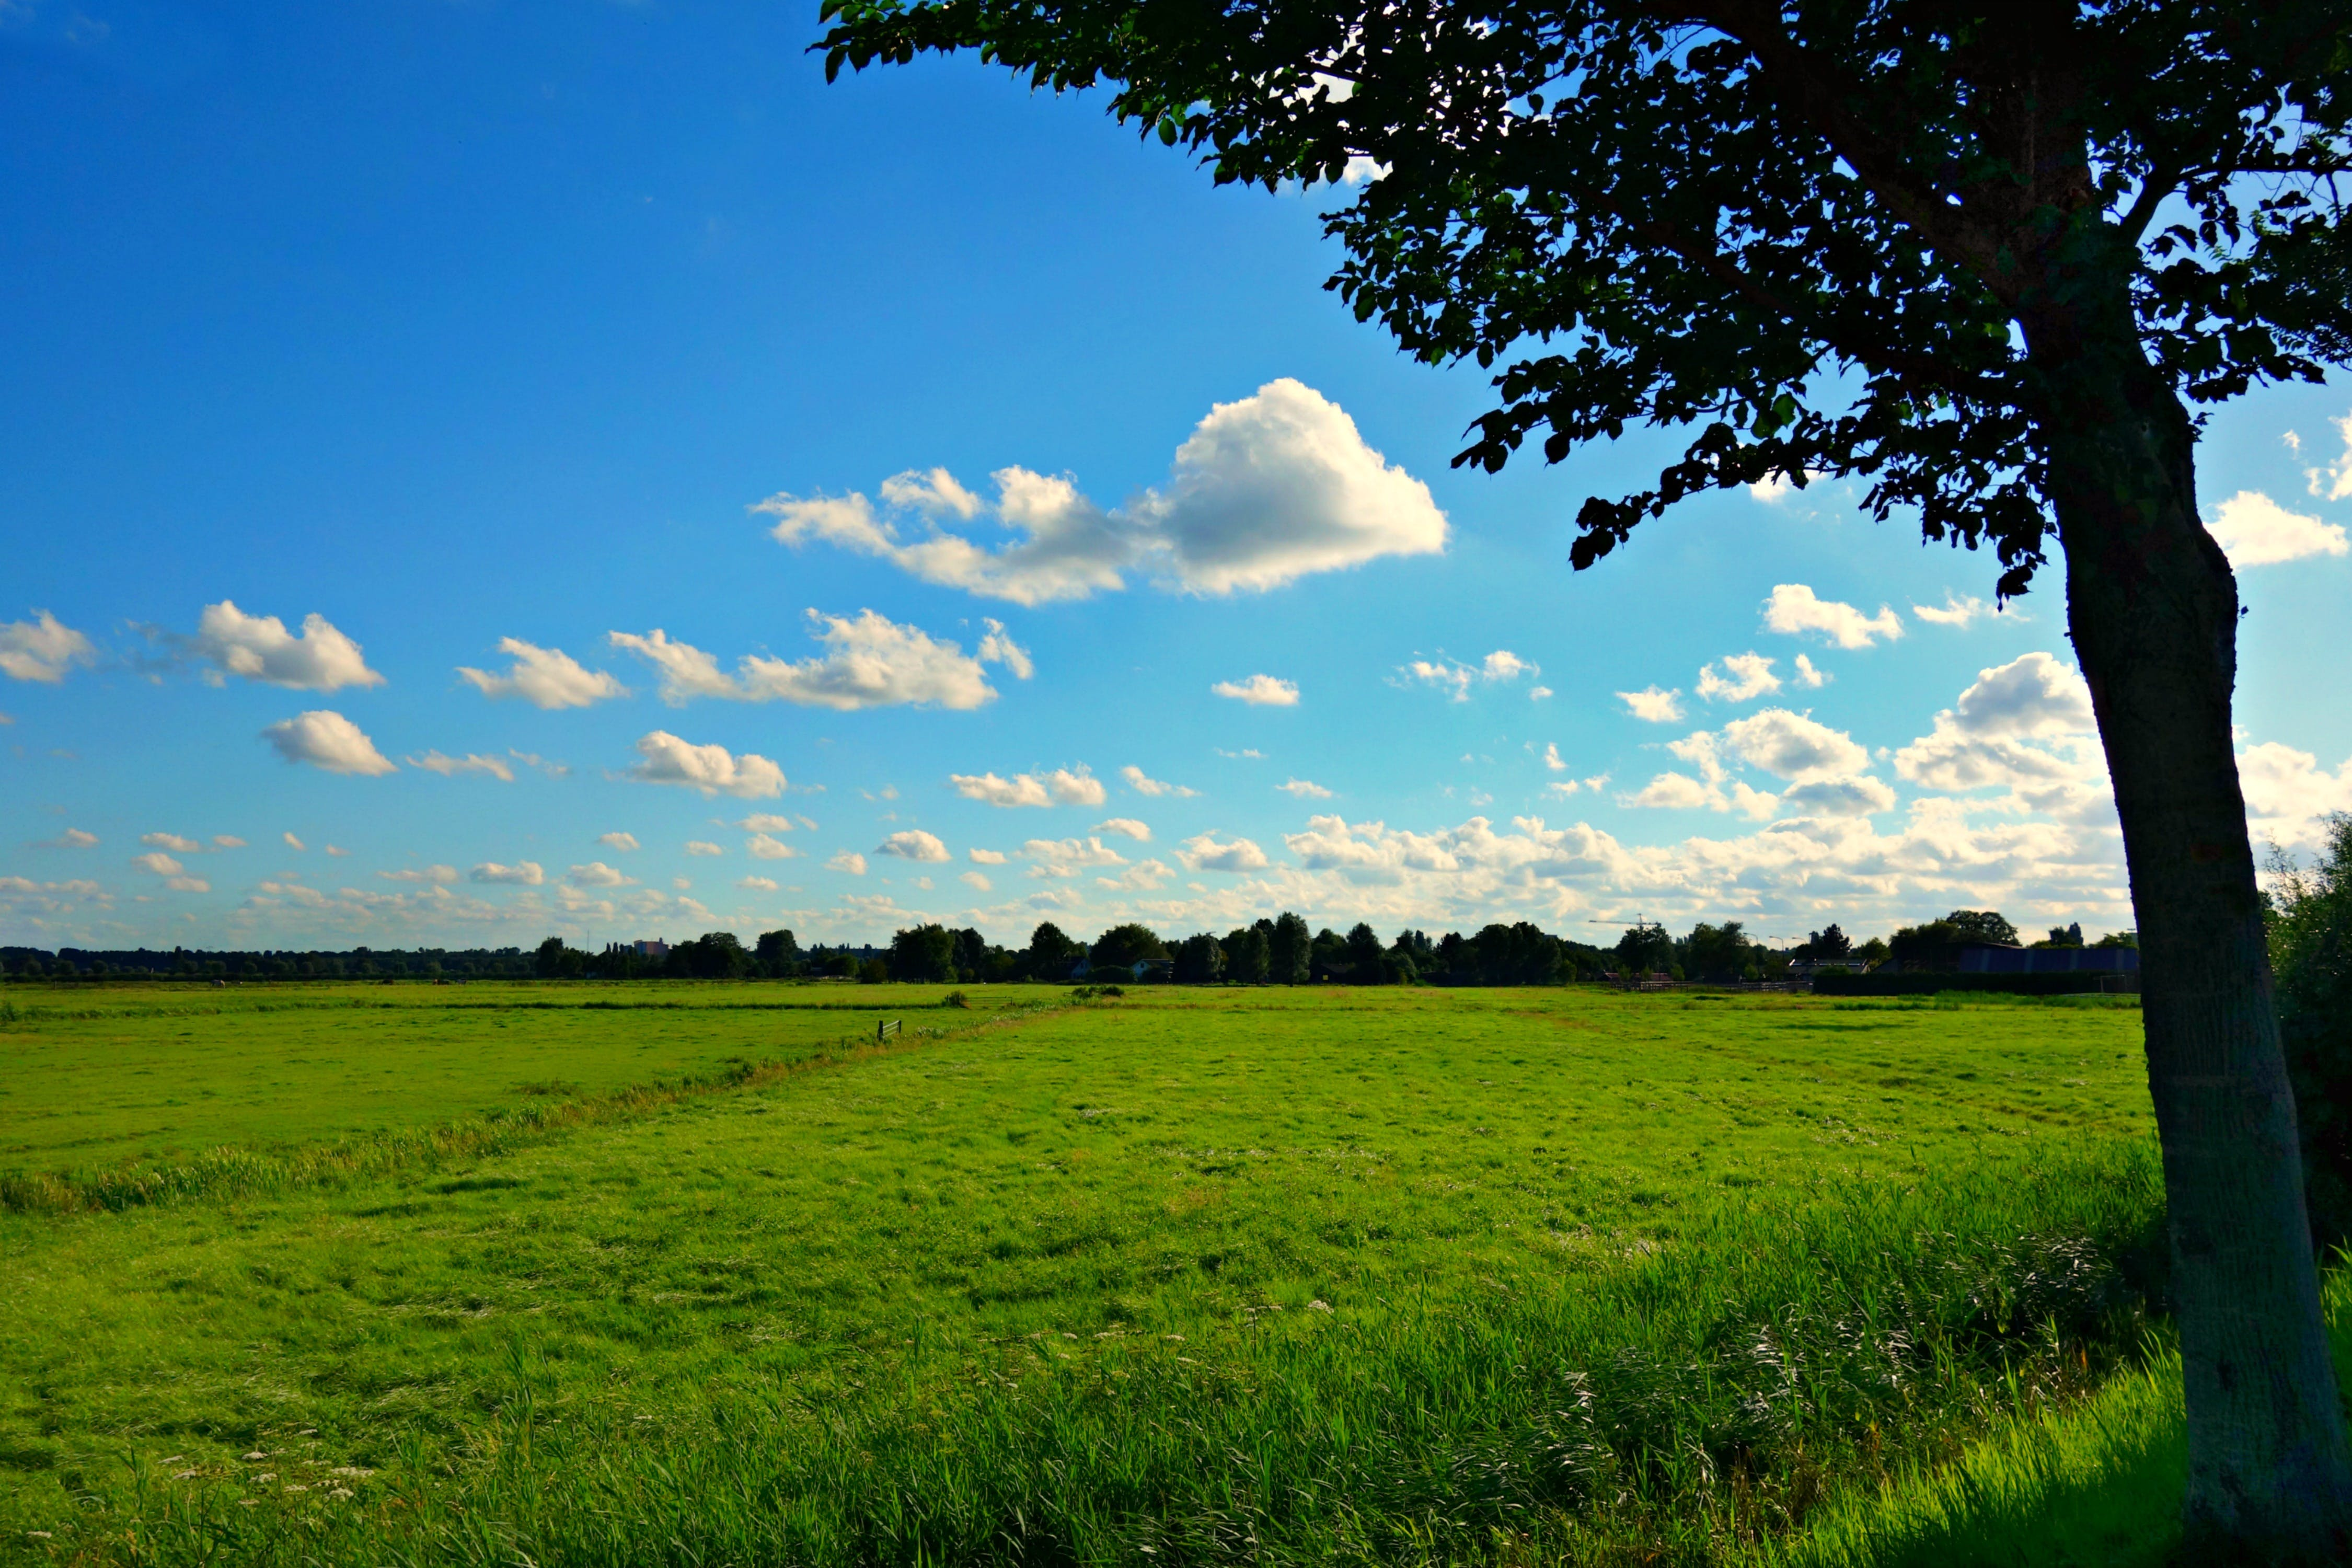 of clouds, countryside, field, grass